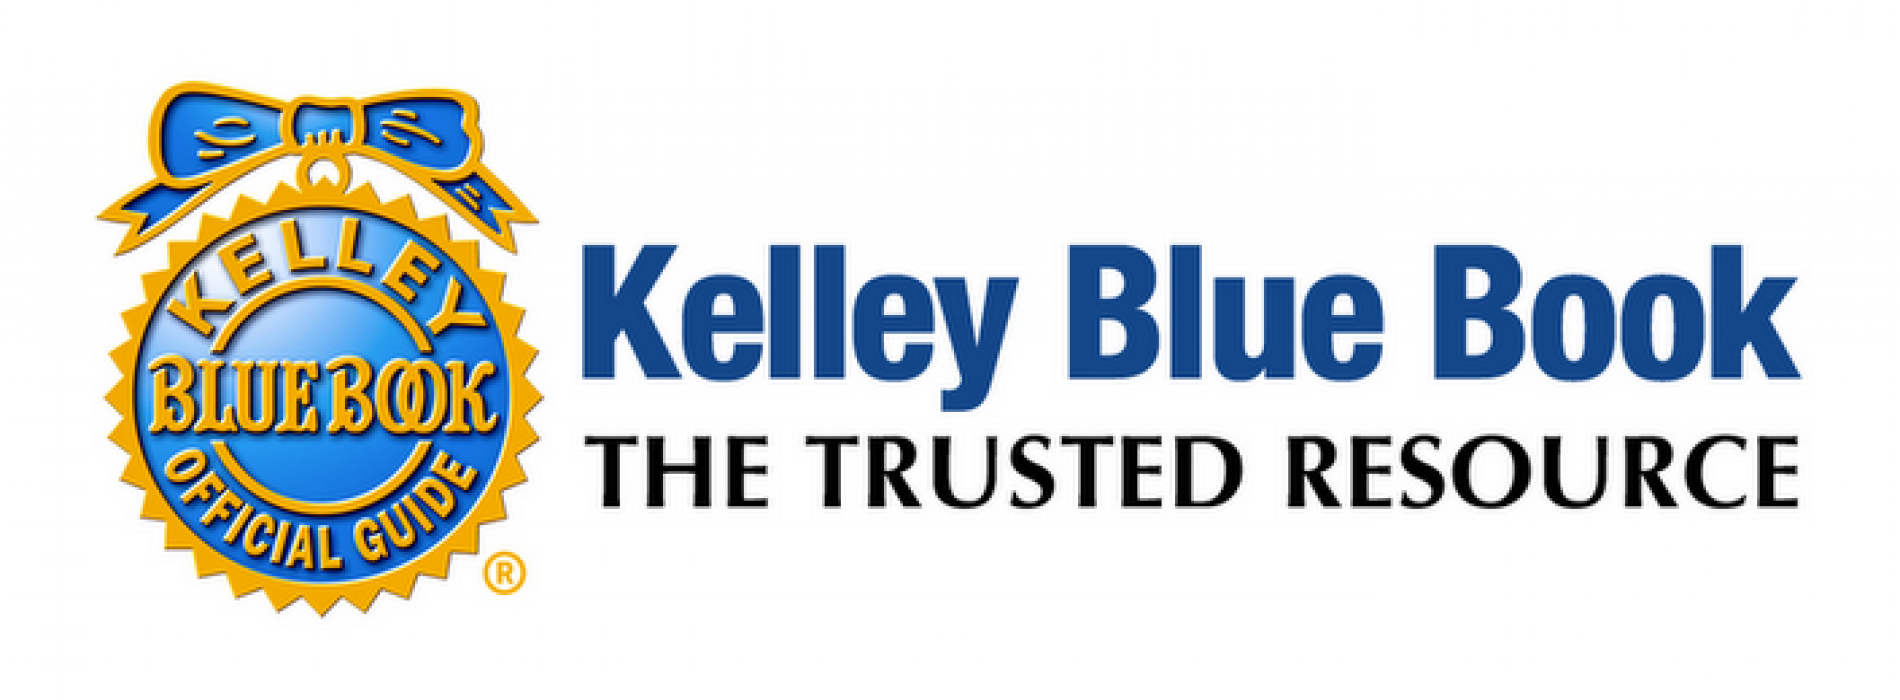 kelly blue book used cars for sale sexy girl and car photos. Black Bedroom Furniture Sets. Home Design Ideas